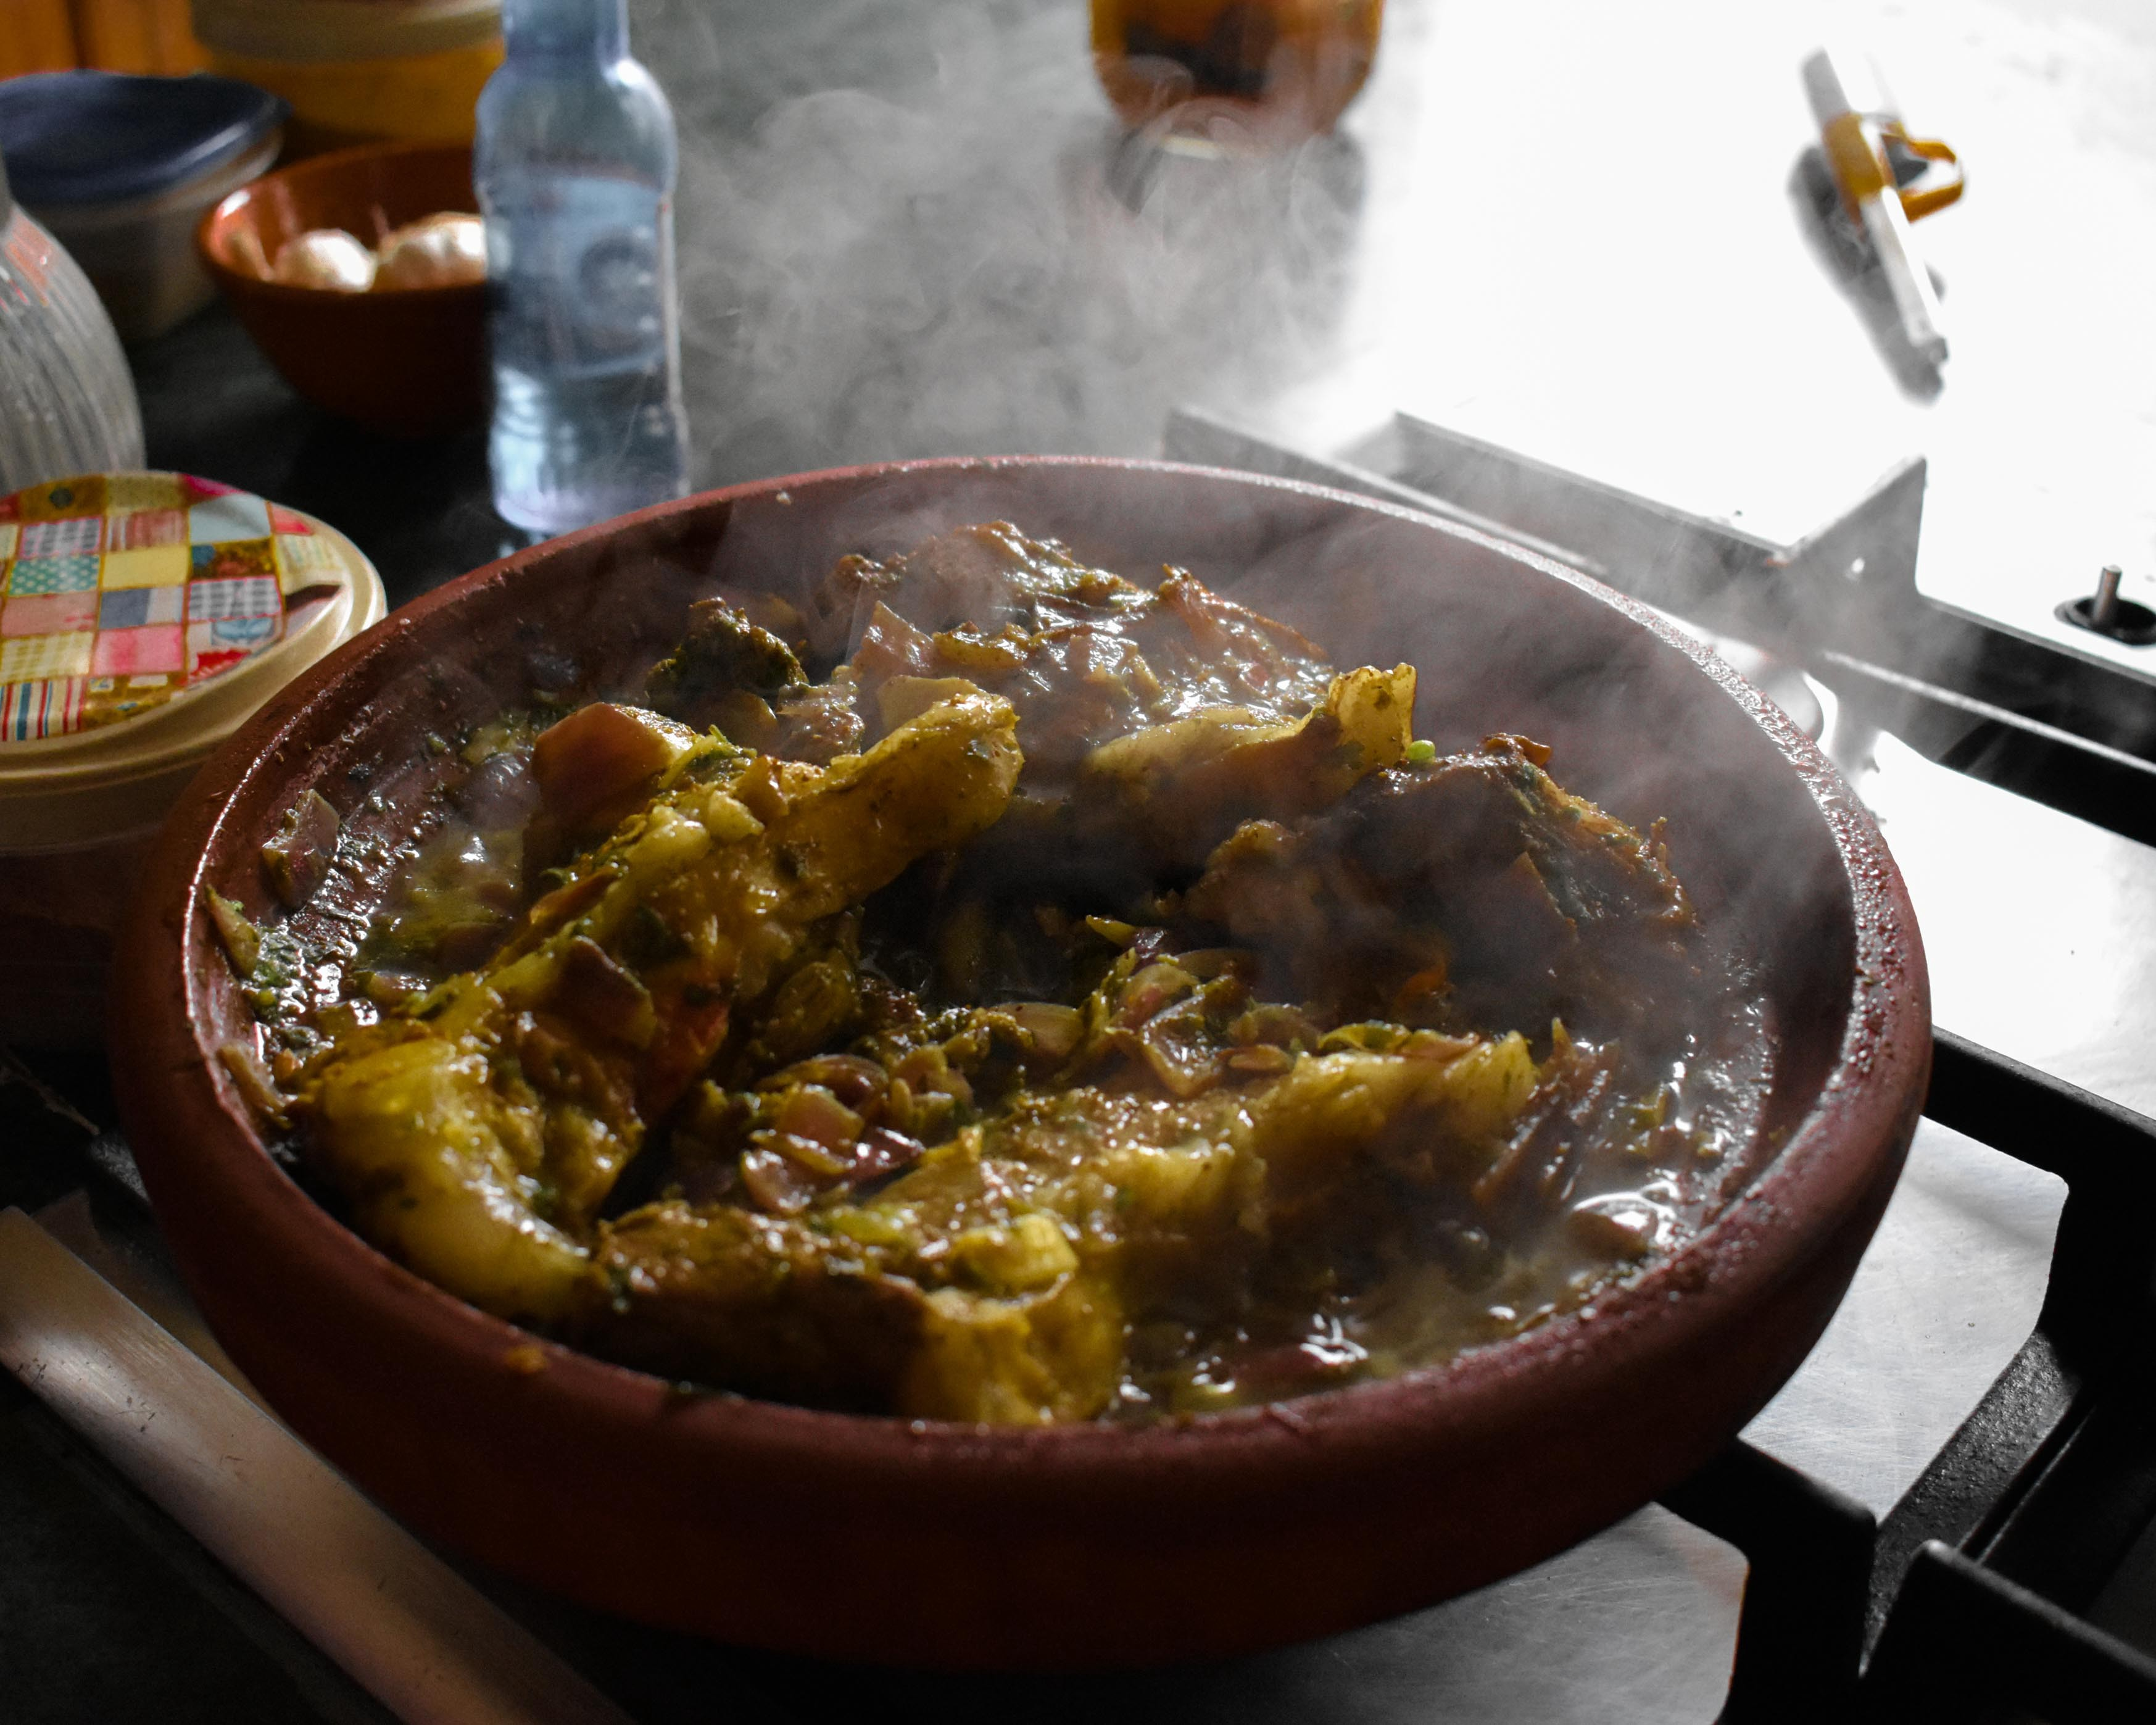 Cooking Tagine or Tajine in Marrakech, Morocco — Lamb Tagine, lamb stew, Moroccan lamb stew in clay pot over stove